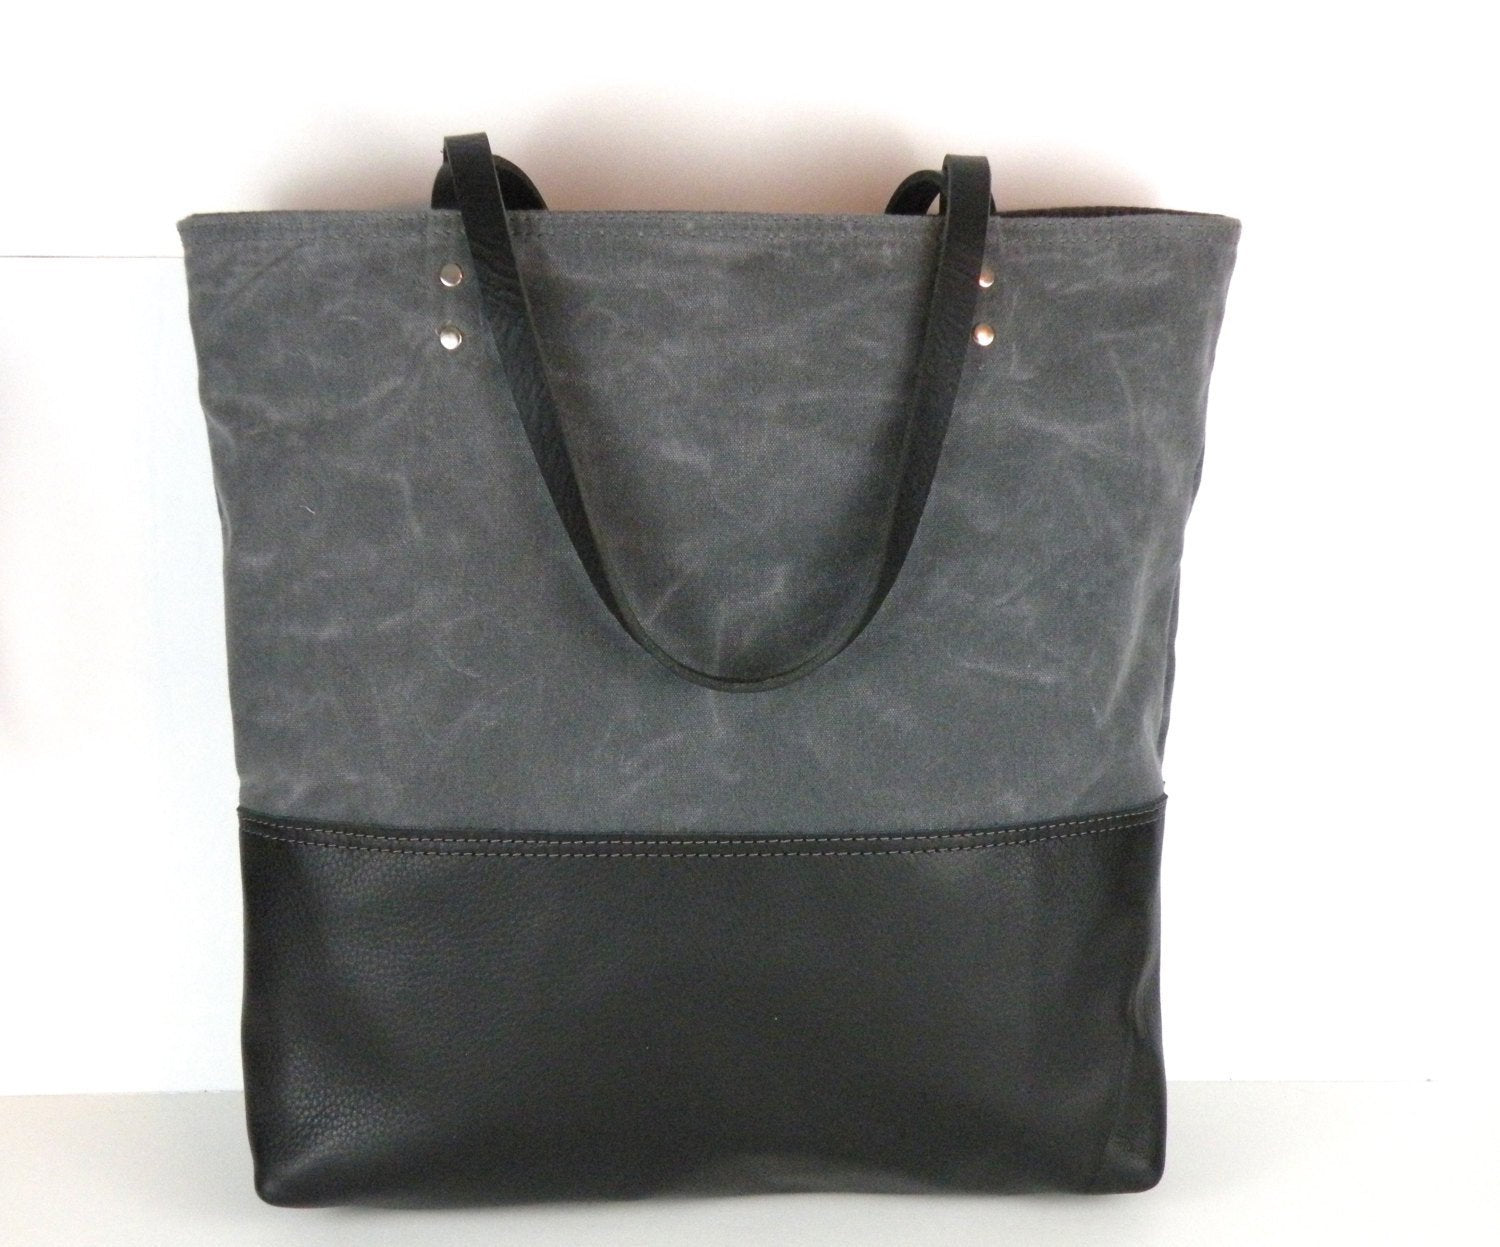 Urban Tote in Charcoal Grey Waxed Canvas and Black Leather